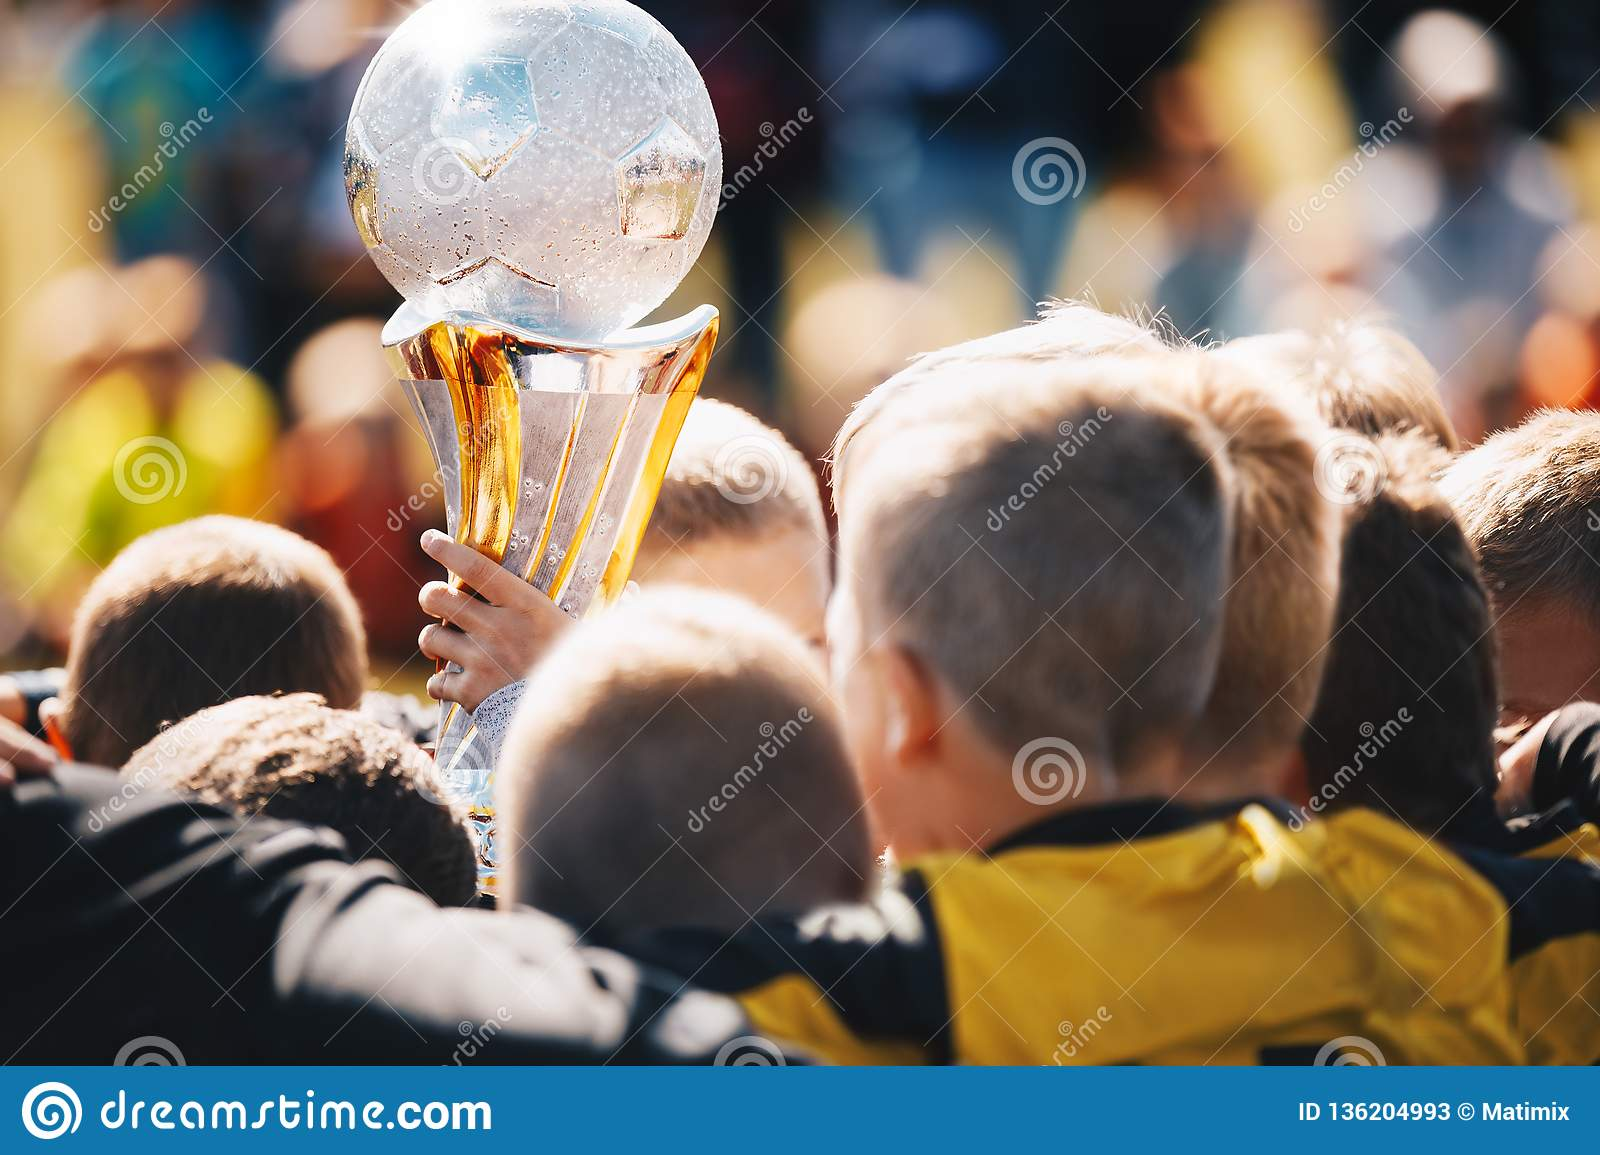 Kids Sport Team with Trophy. Kids Celebrating Football Championship